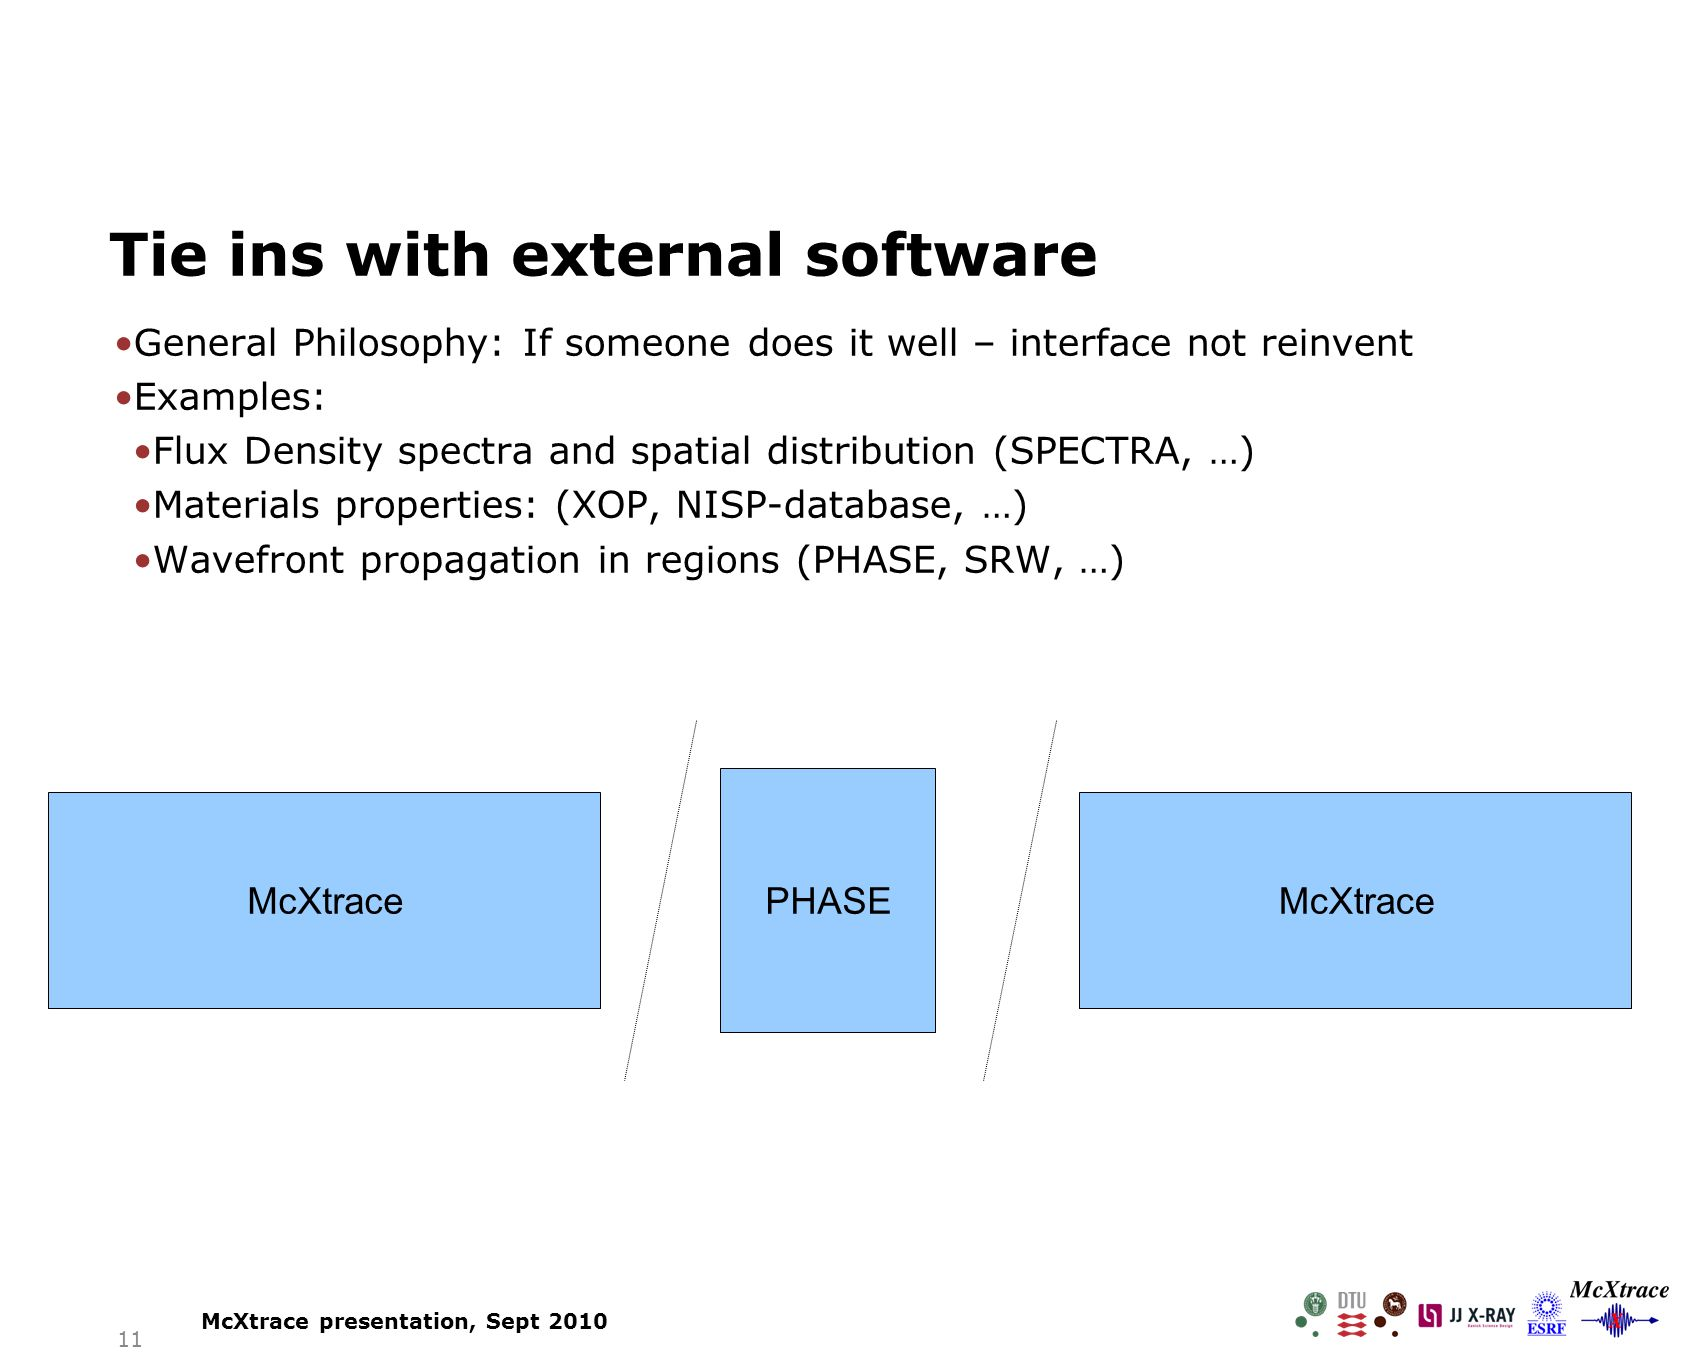 11 Tie ins with external software General Philosophy: If someone does it well – interface not reinvent Examples: Flux Density spectra and spatial distribution (SPECTRA, …) Materials properties: (XOP, NISP-database, …) Wavefront propagation in regions (PHASE, SRW, …) McXtrace PHASE McXtrace McXtrace presentation, Sept 2010